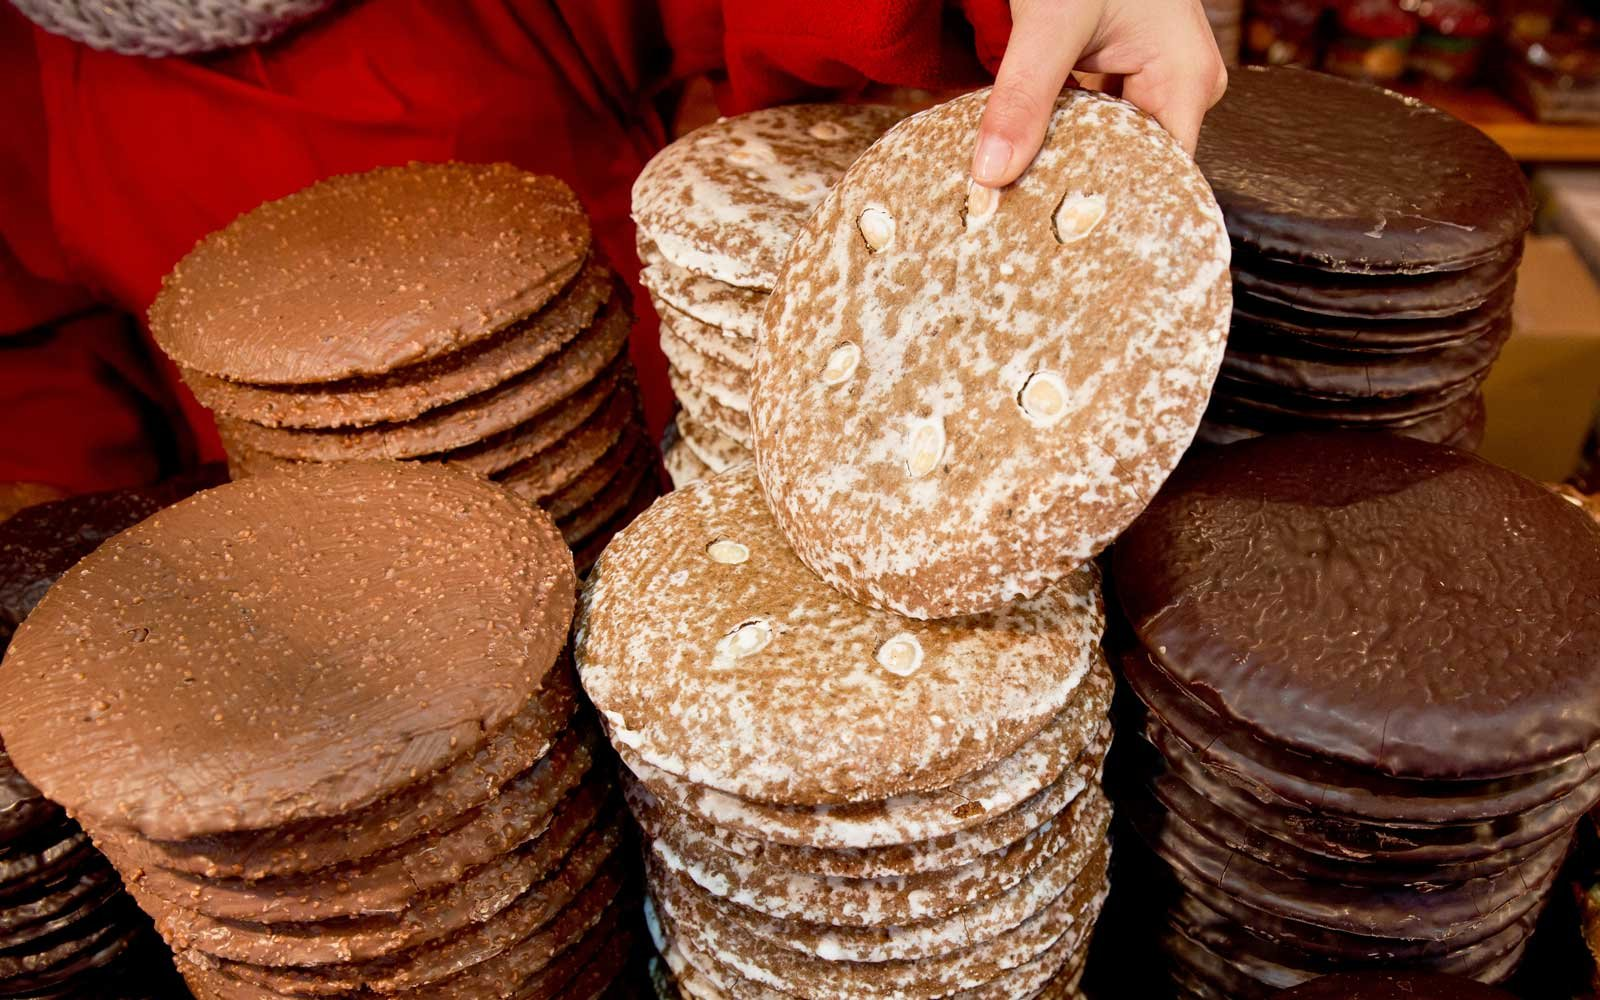 Nuremberg is noted for its gingerbread, which is made with natural honey, almonds, cinnamon, and spices.